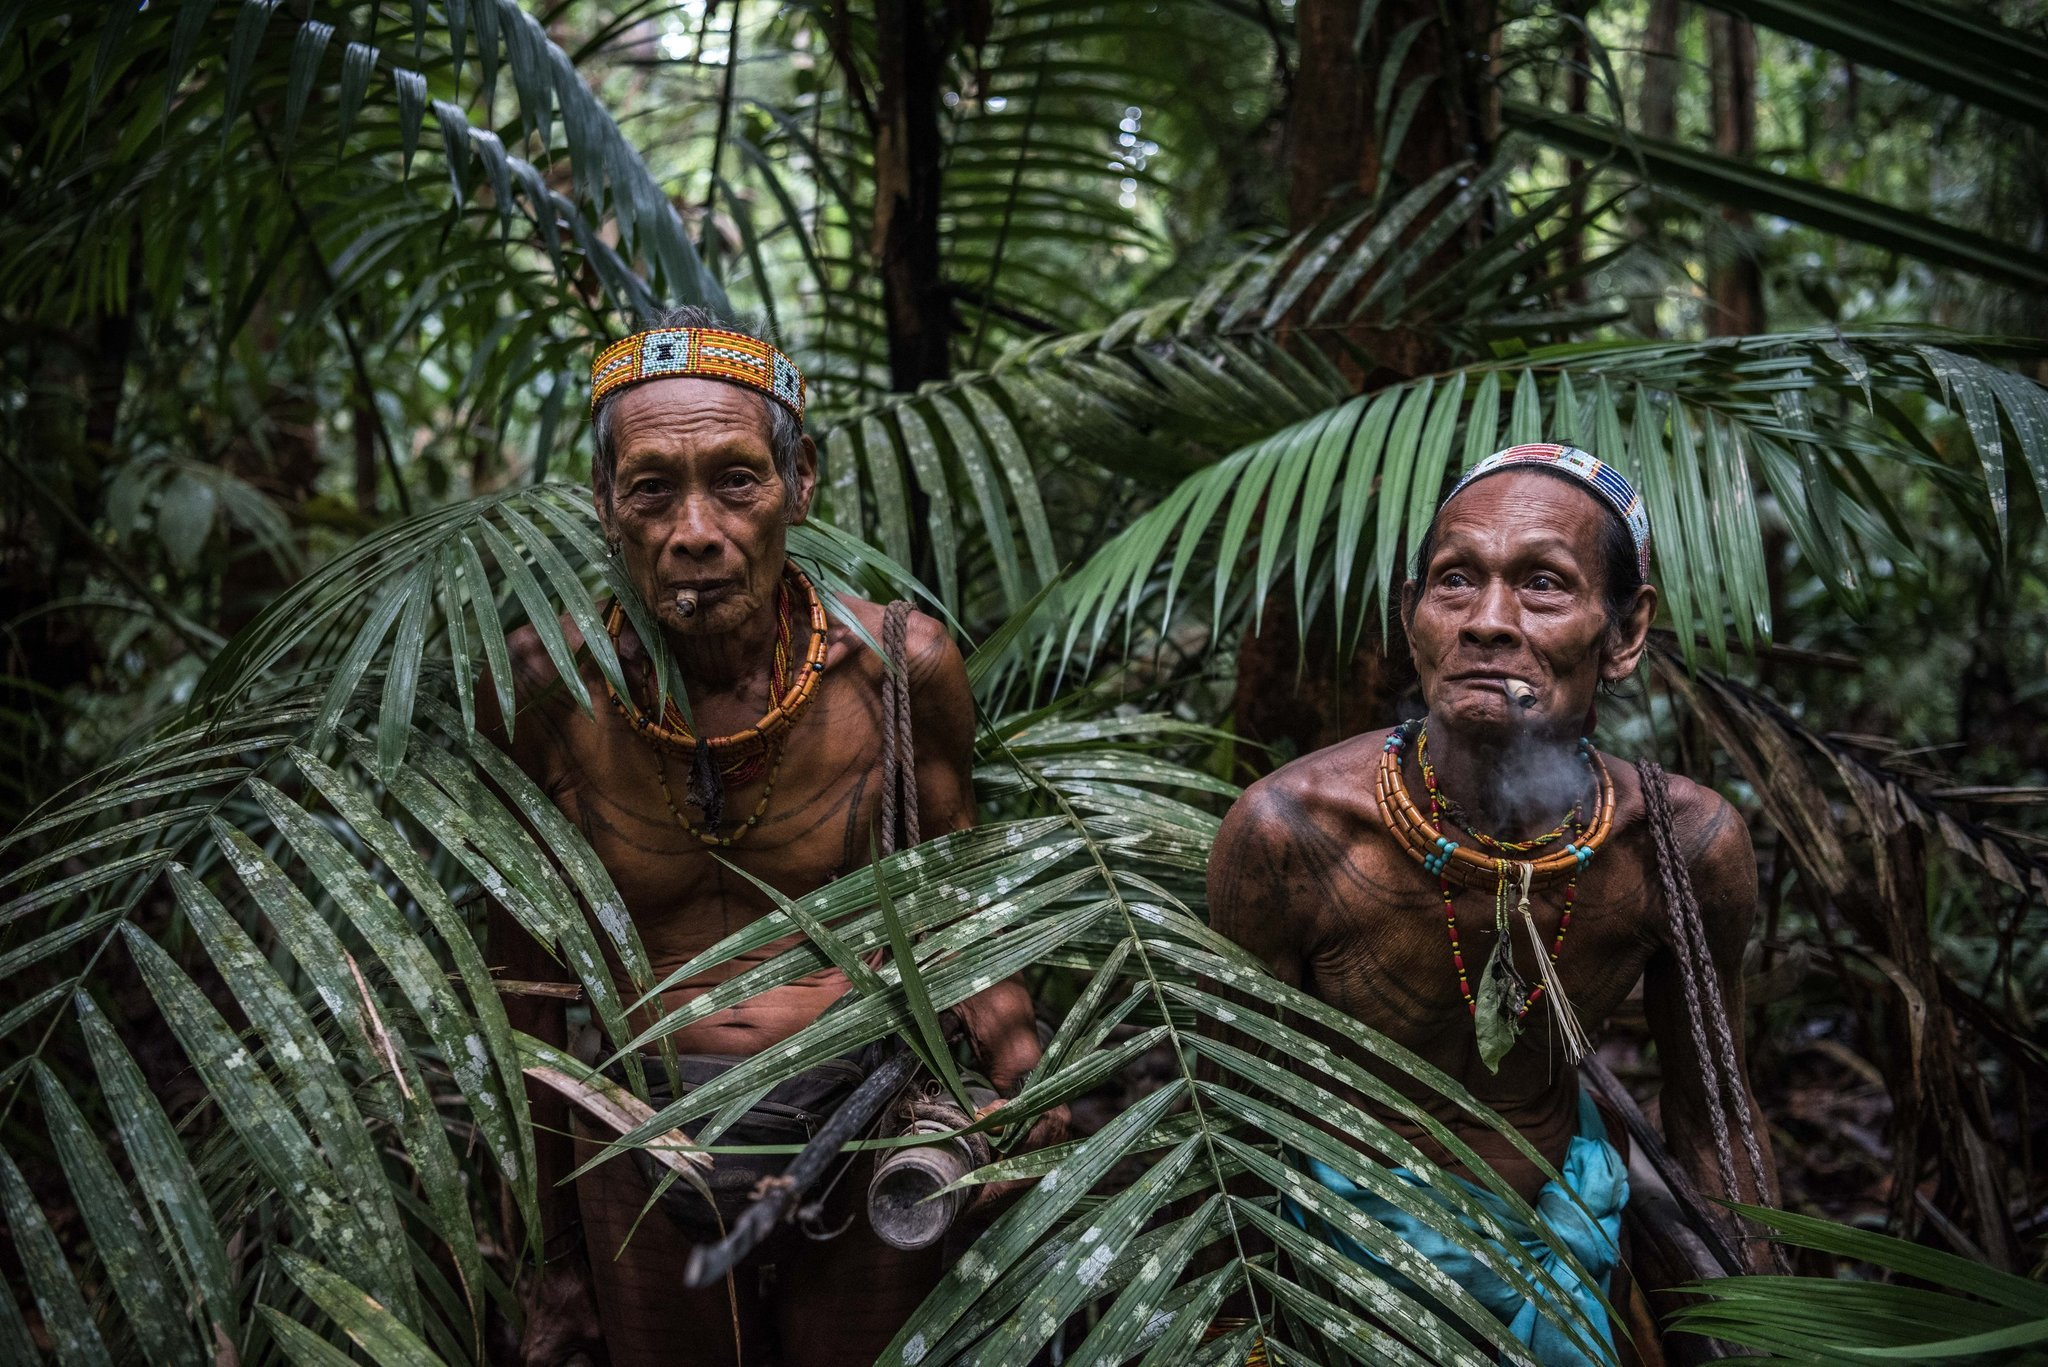 an ancient indonesian tribe clings to its ways the story bar